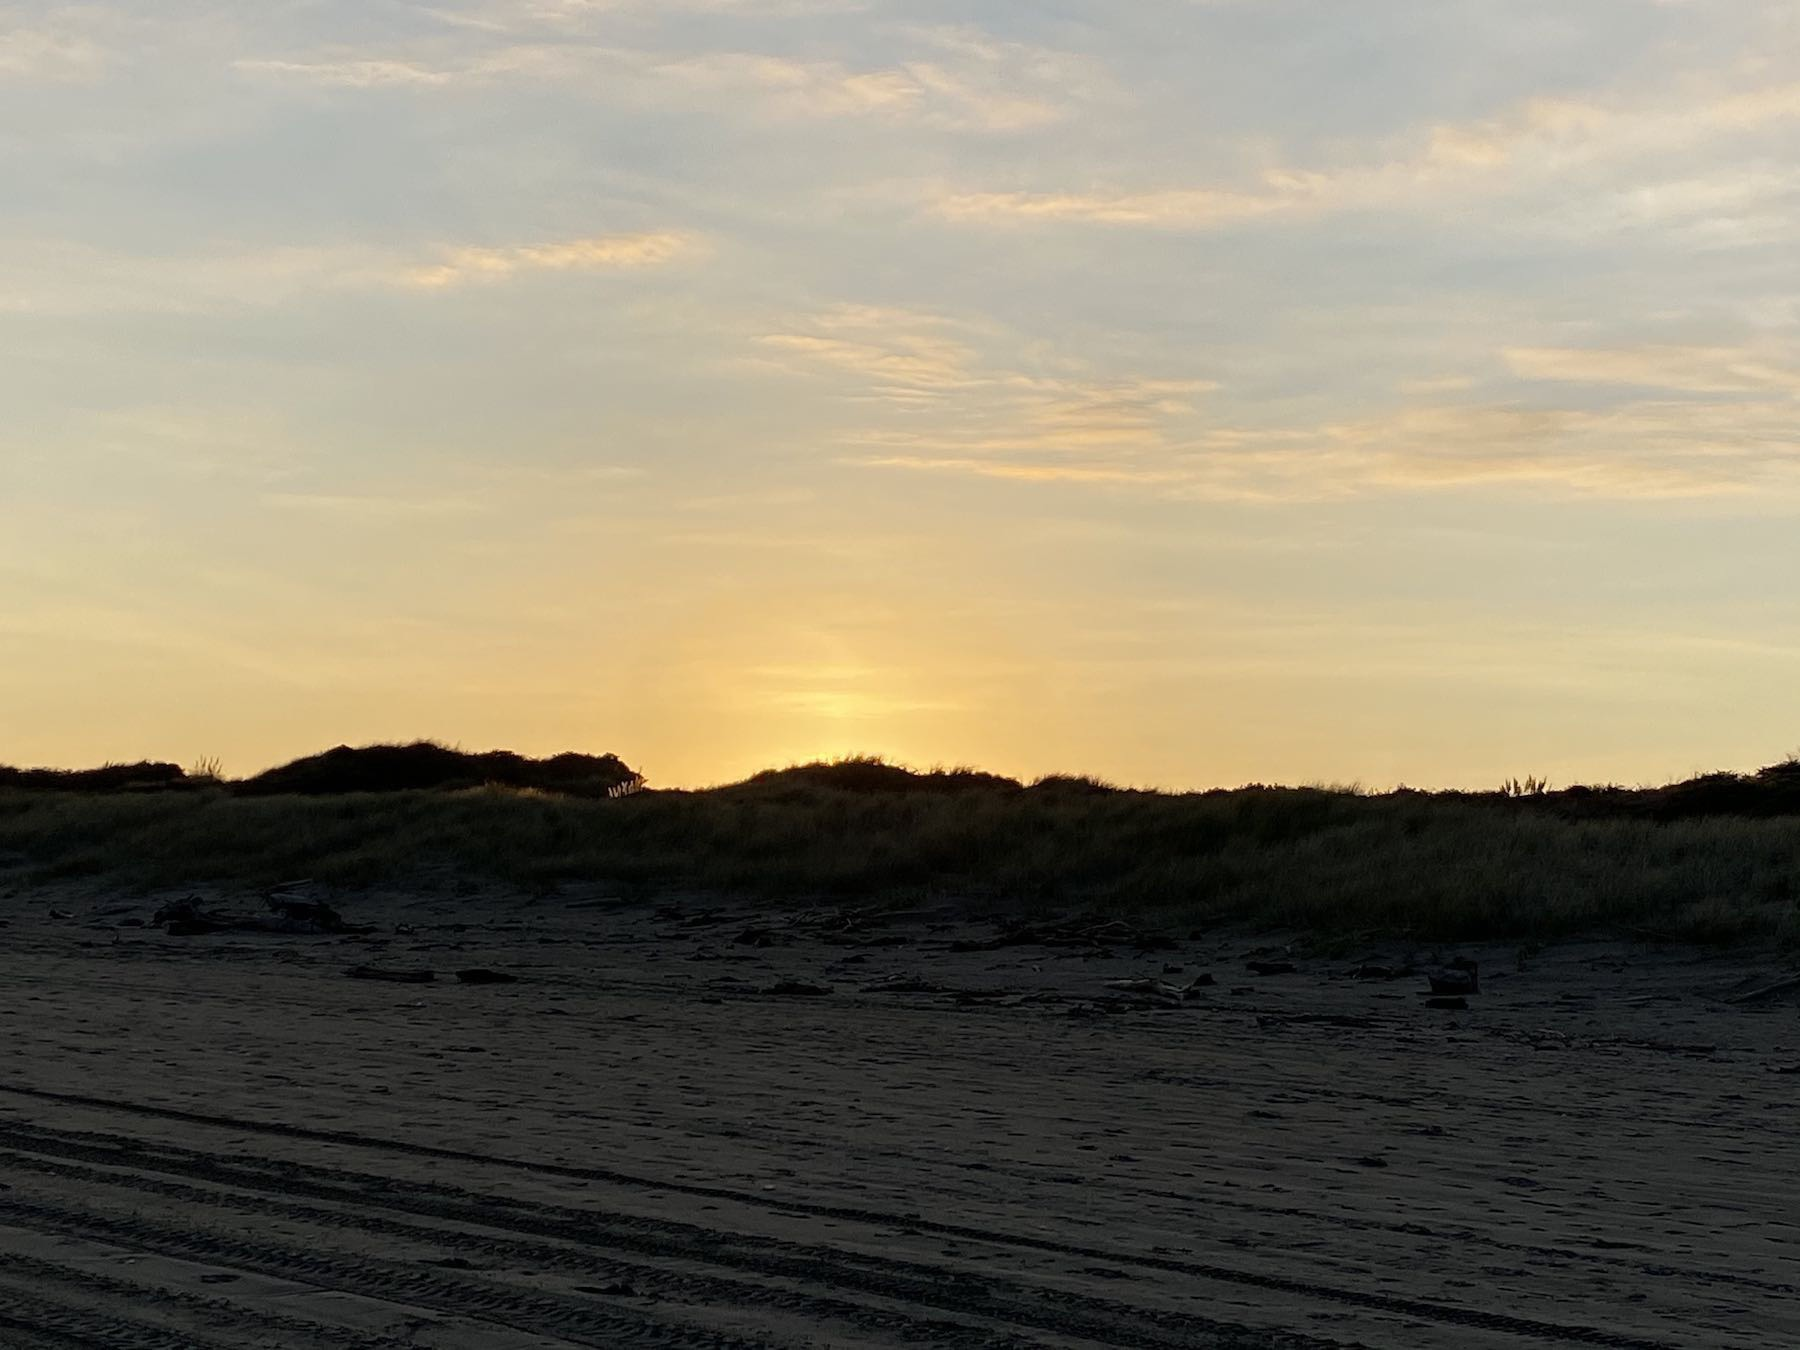 Sun rising behind a sand dune, with a halo of orange.